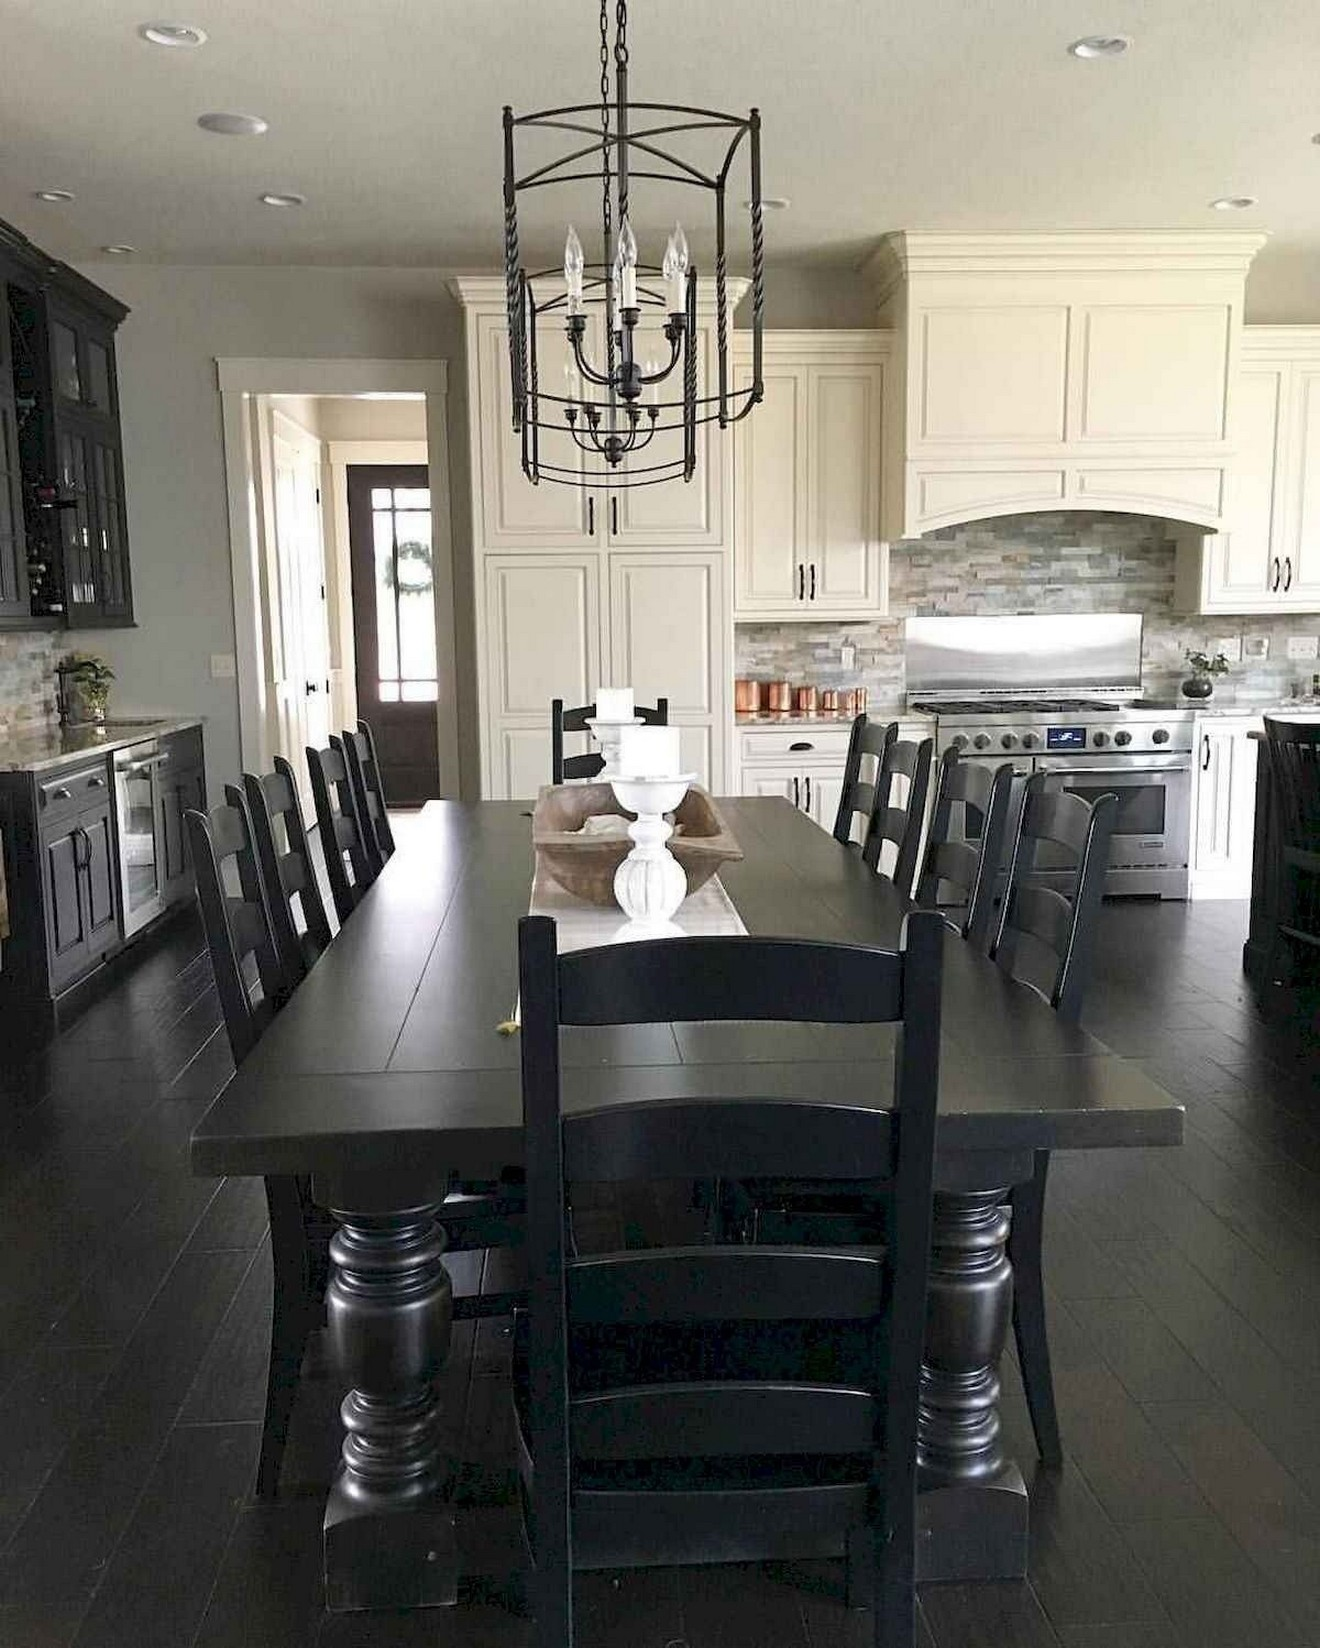 86 Different Types Of Dining Chairs Home Decor 15